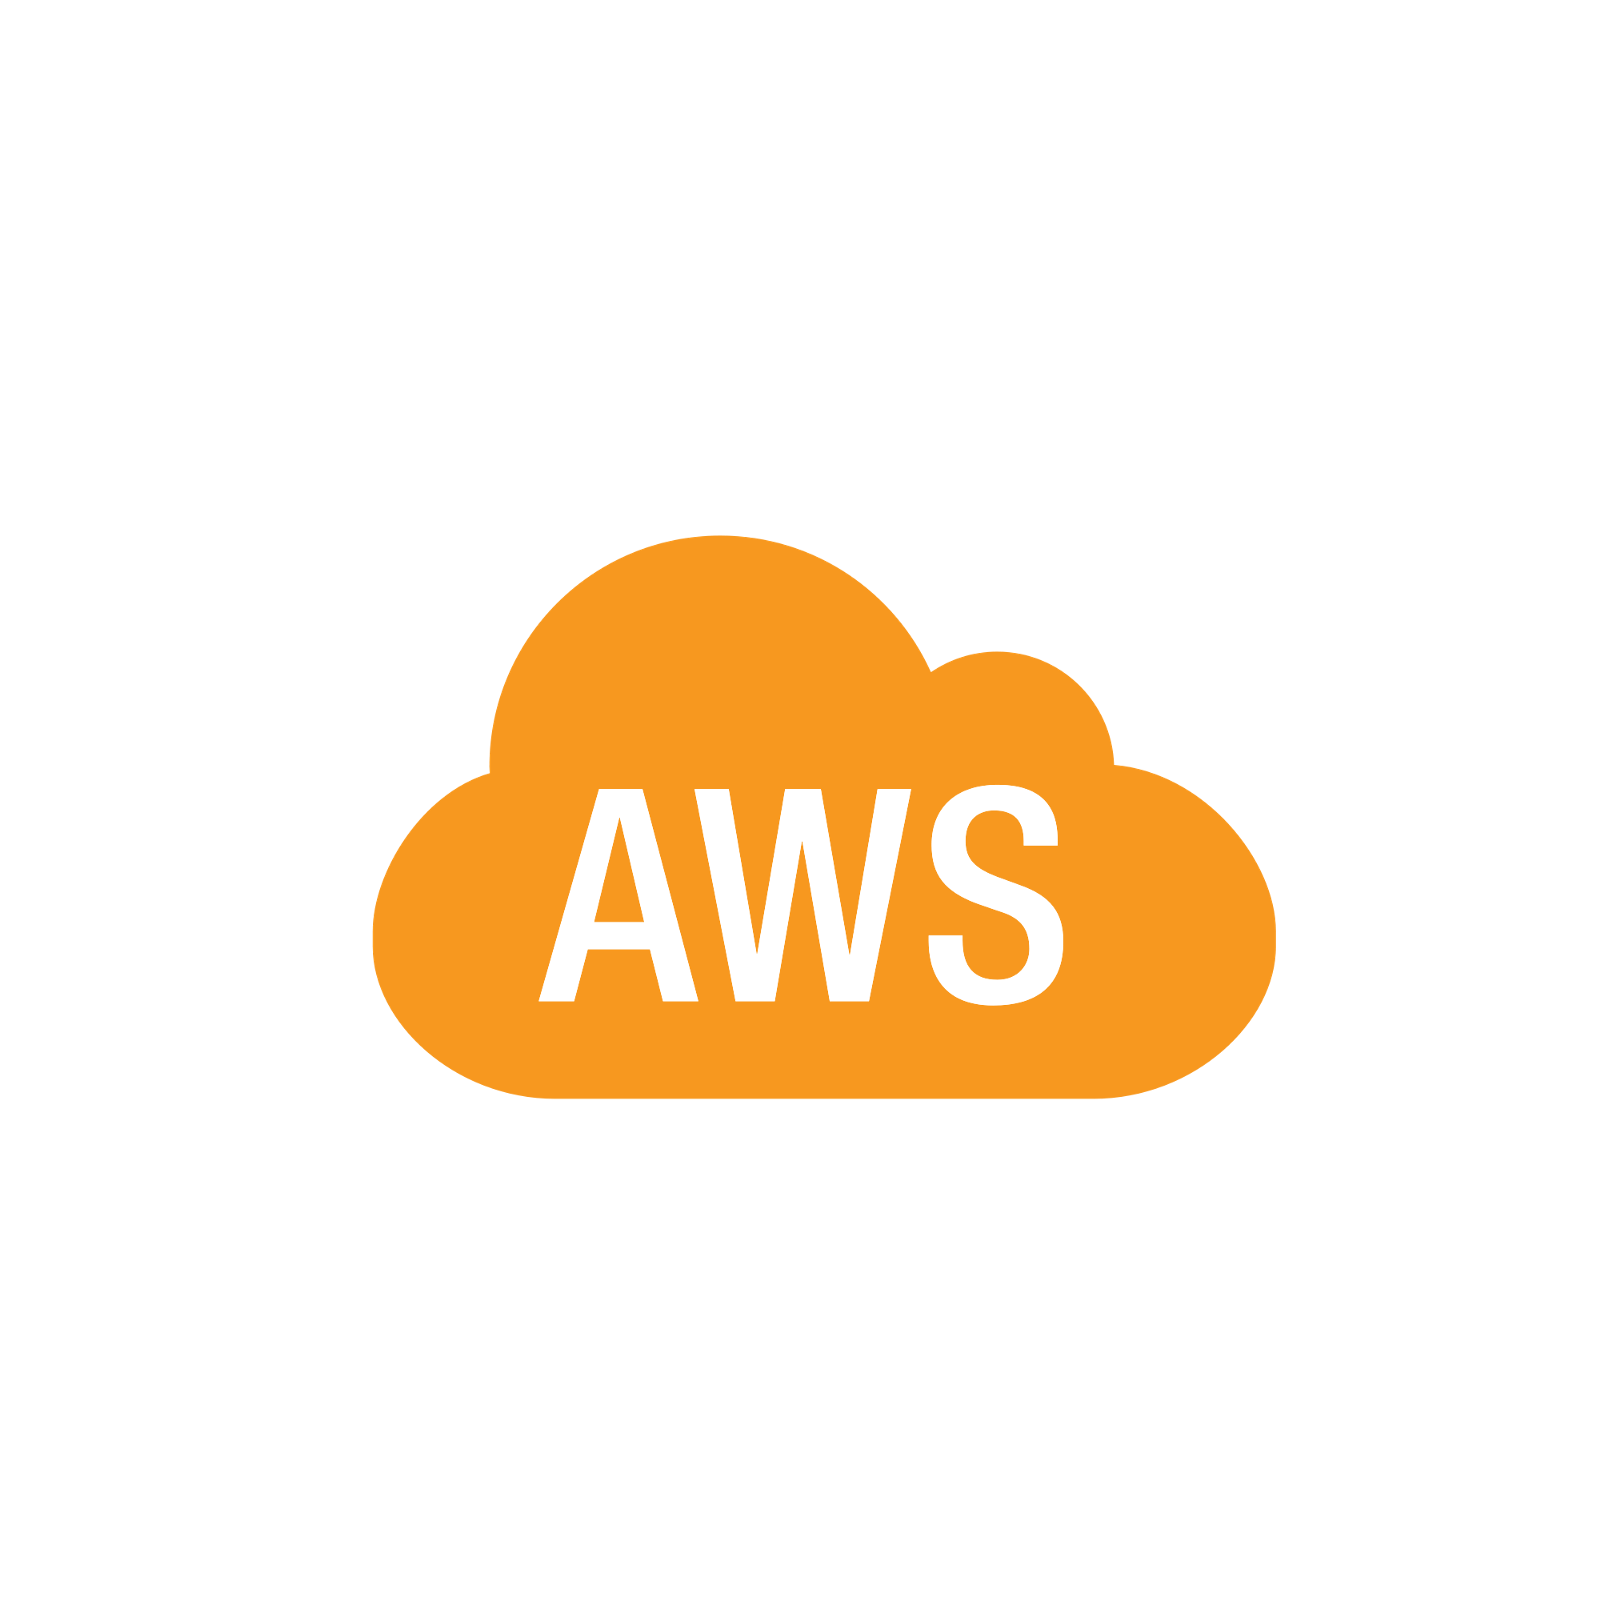 Aws logo png. Scale your tech startup